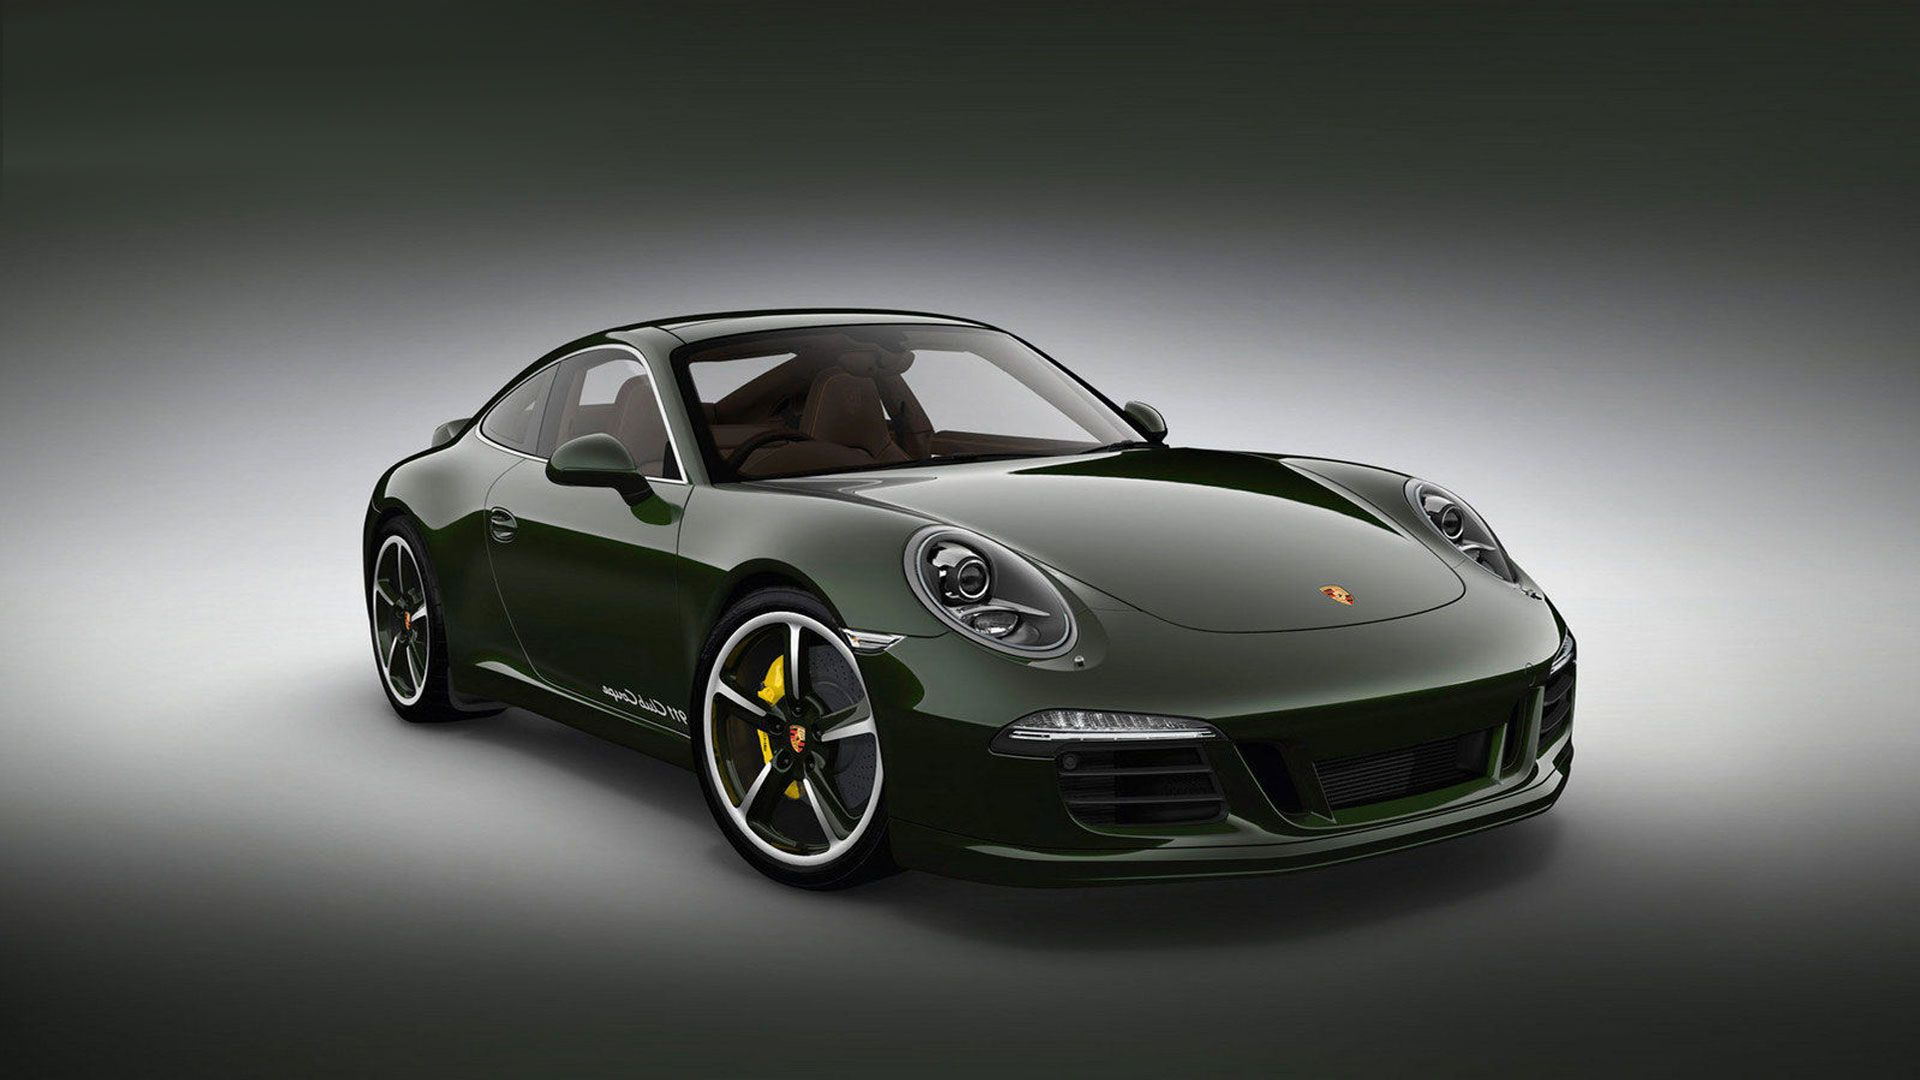 Porsche 911 club coupe check out these porsches http